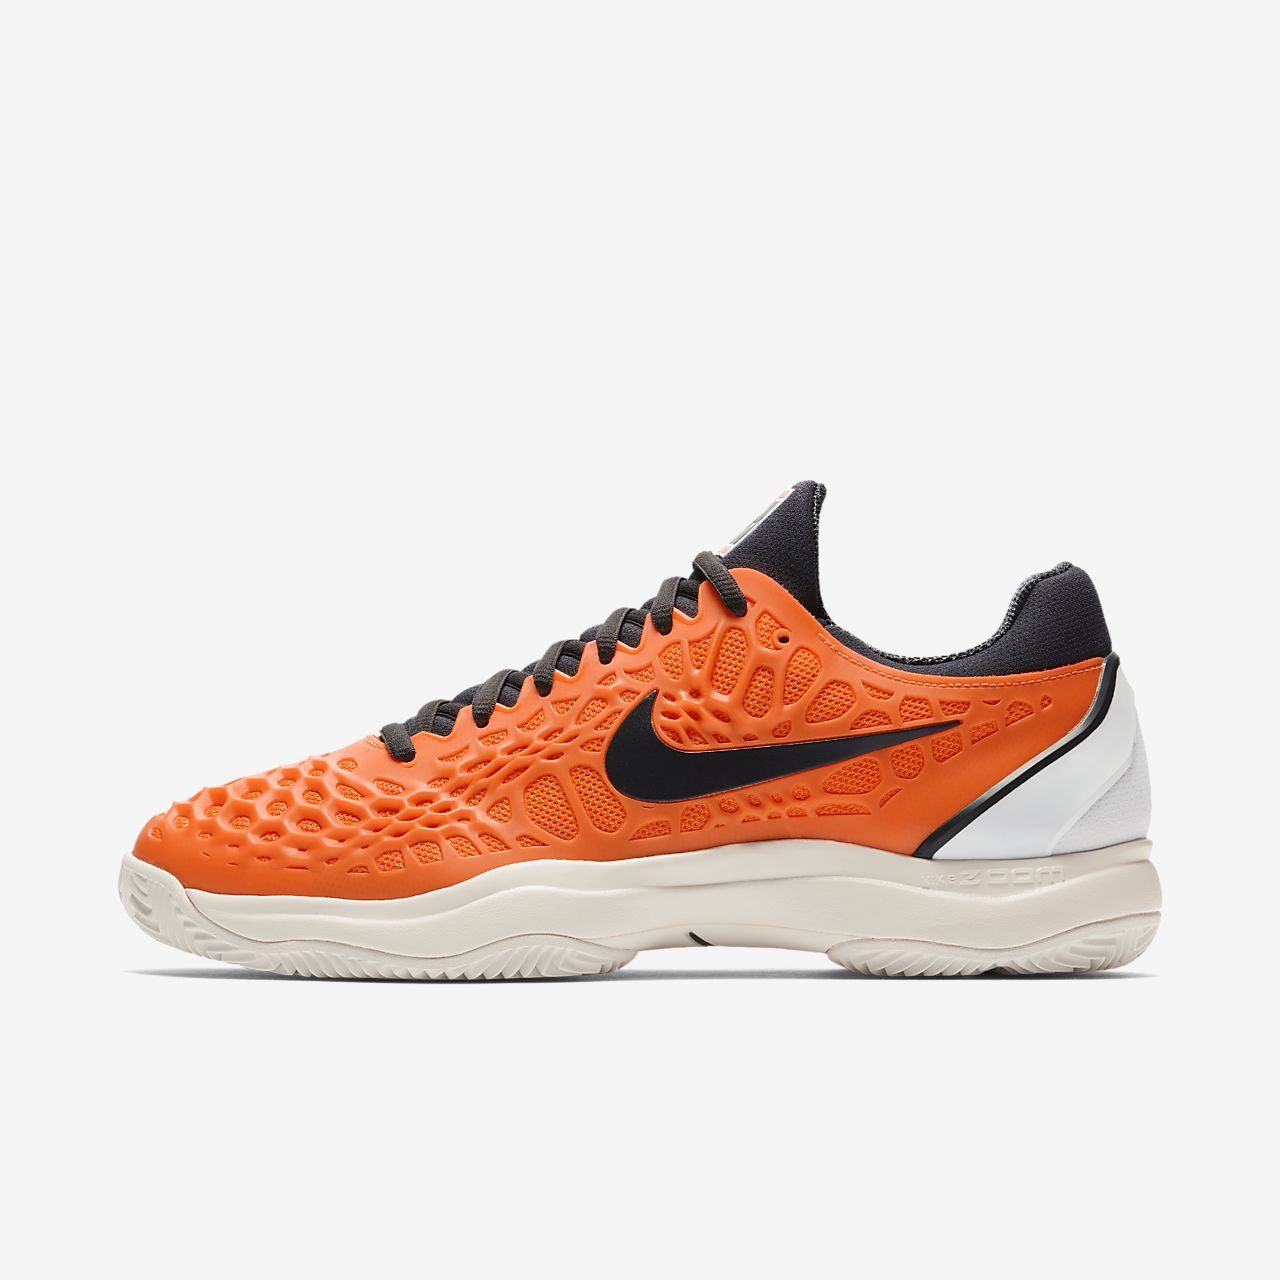 brand new 49b29 46de0 uk nike lunarepic low flyknit 2 m 9dbaf 6d44d  norway chaussure de tennis nike  zoom cage 3 clay pour homme adfca 64daa